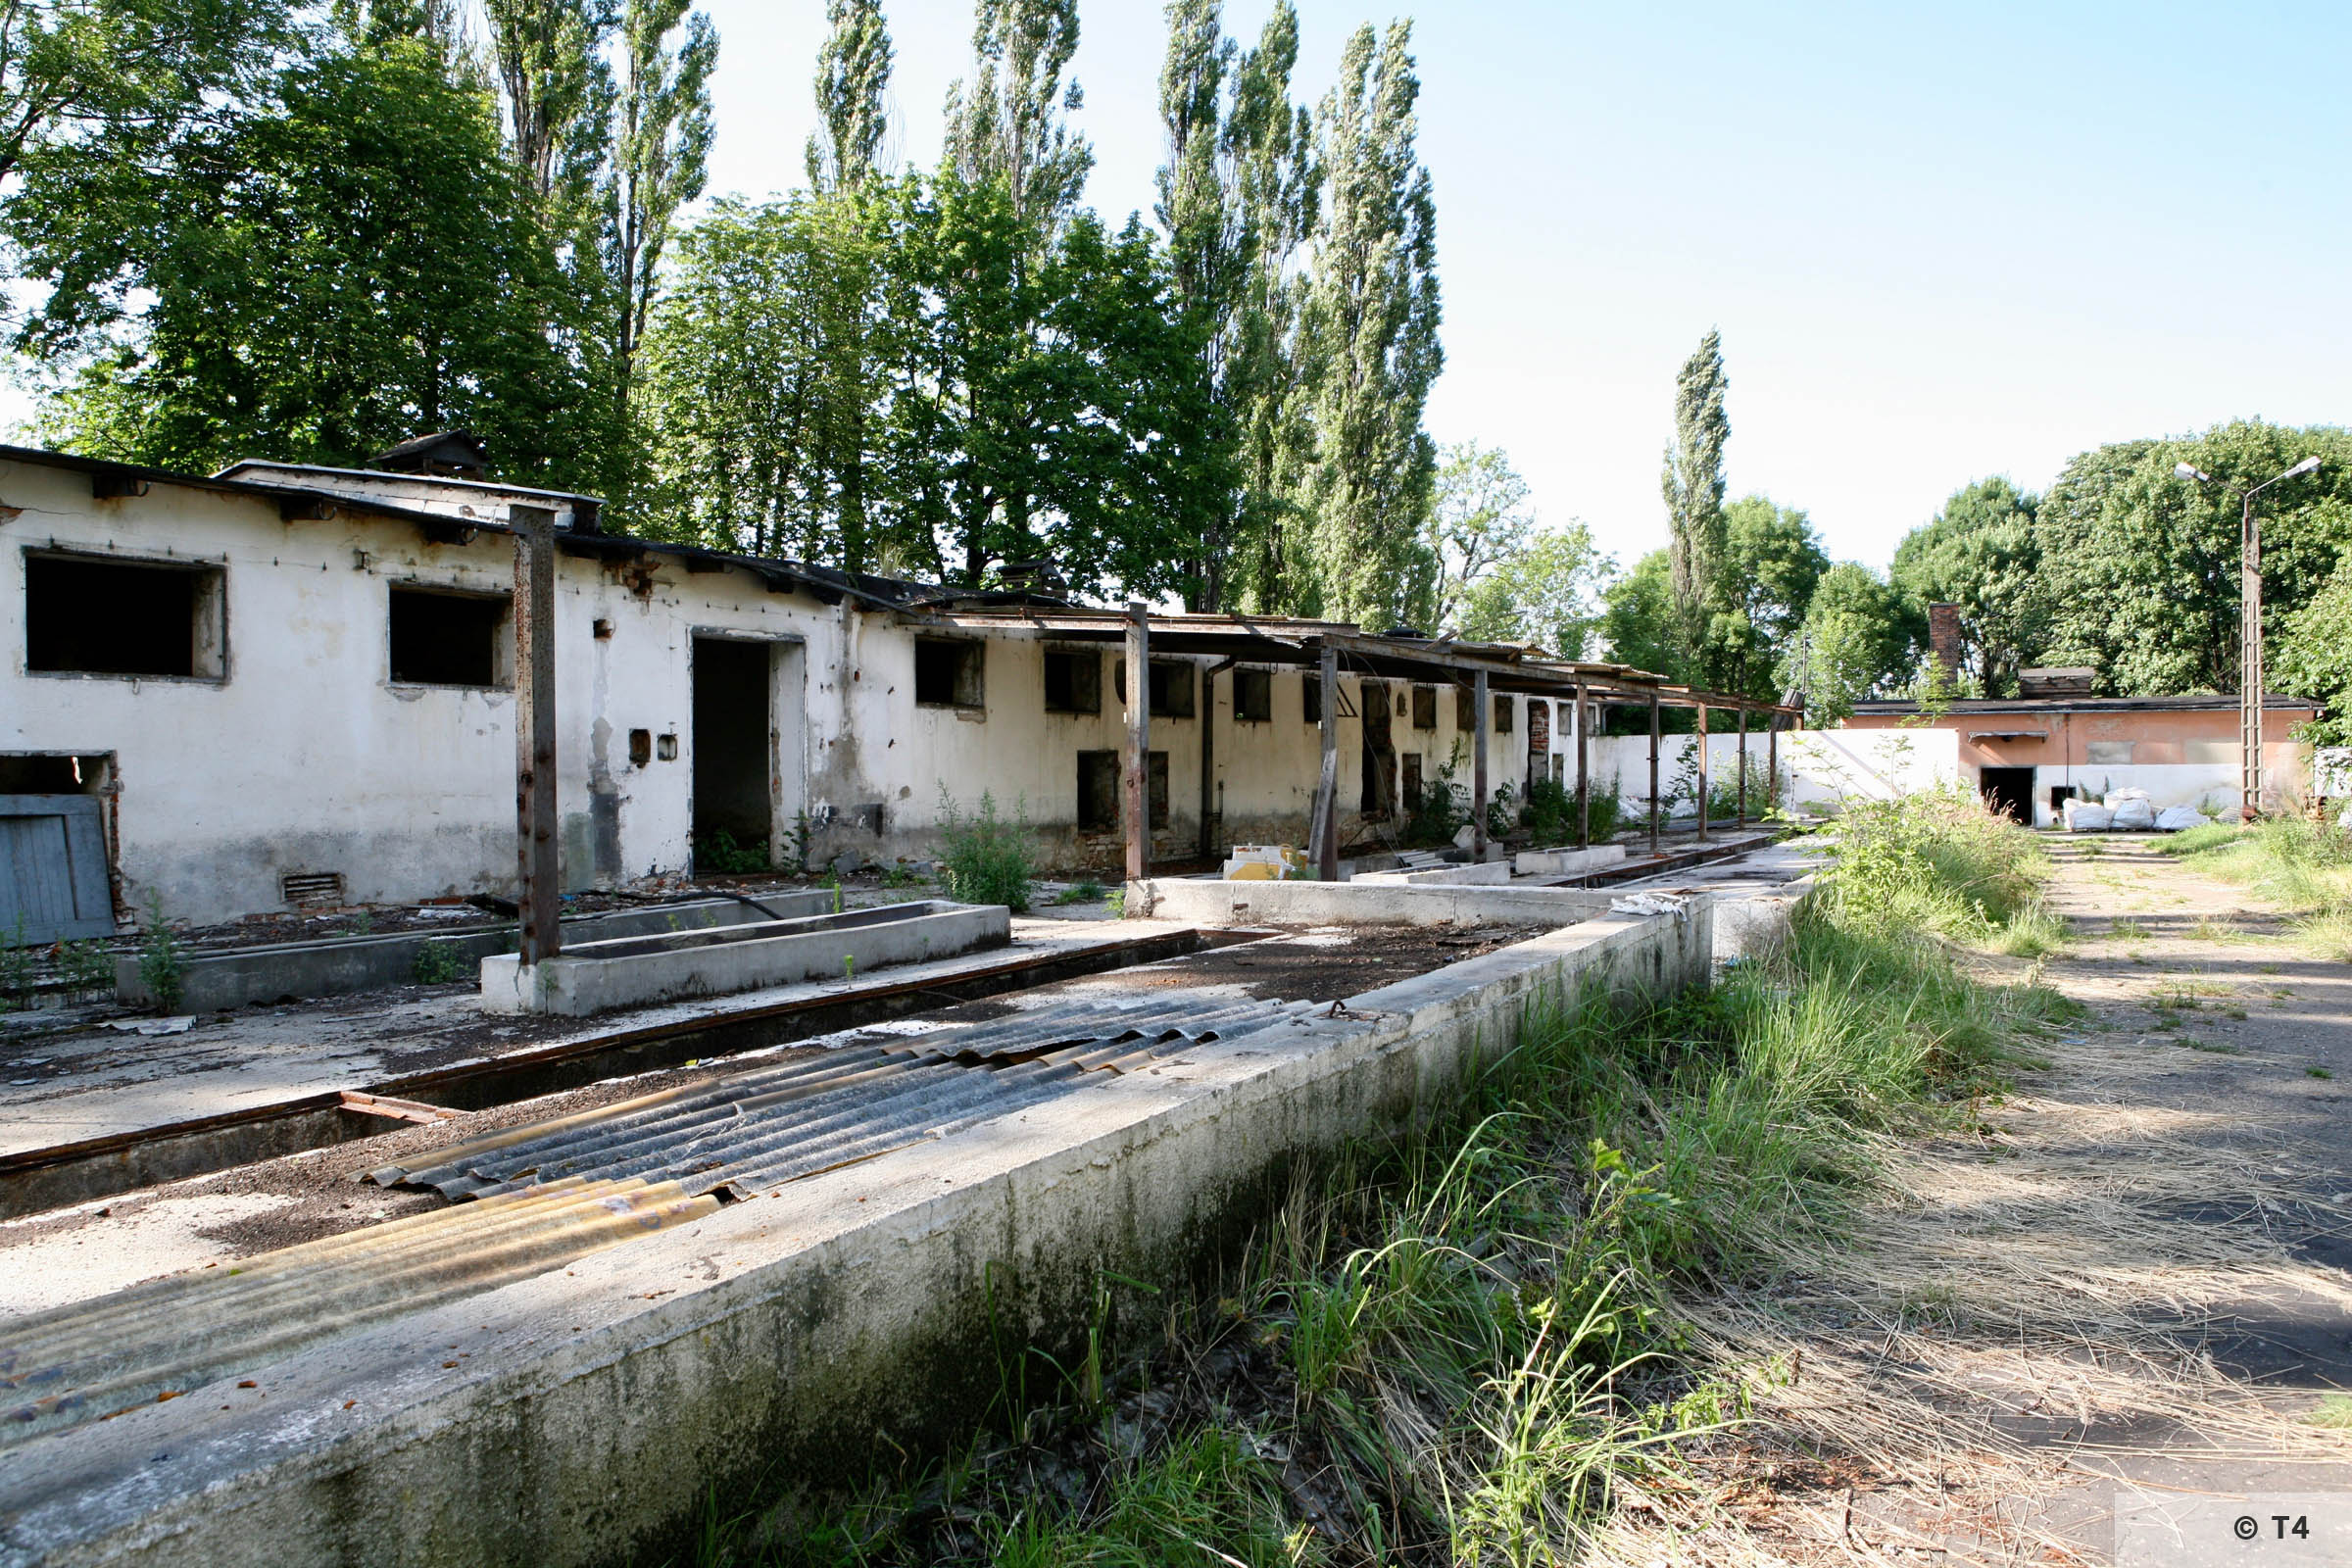 View of the single storey stable block on the left from inside the former sub camp where the kapos, hospital were organsised. 2007 T4 9294